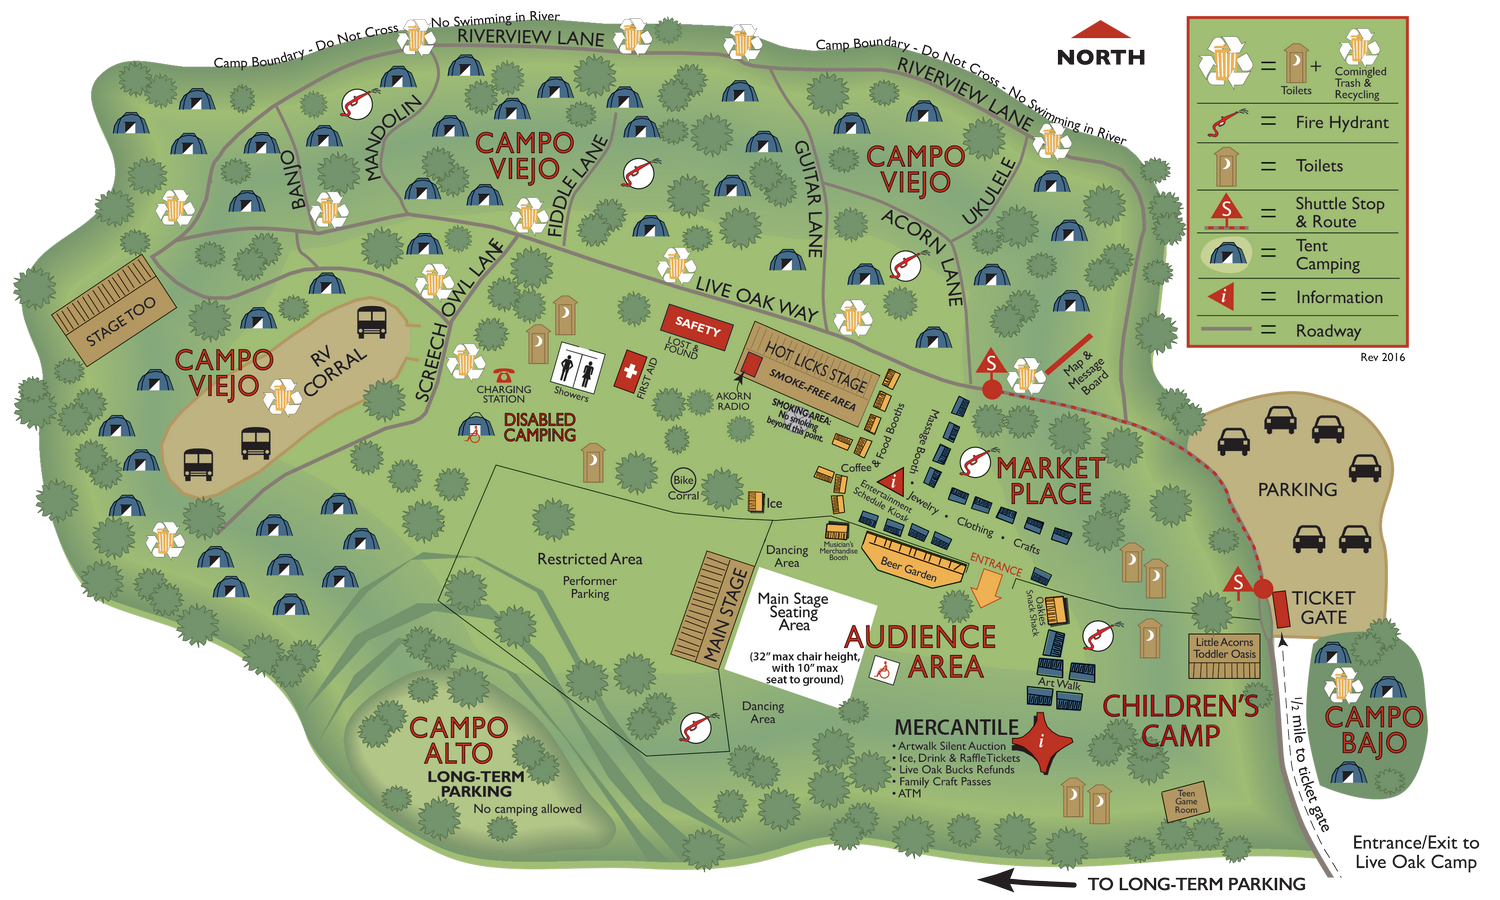 Campground Overview